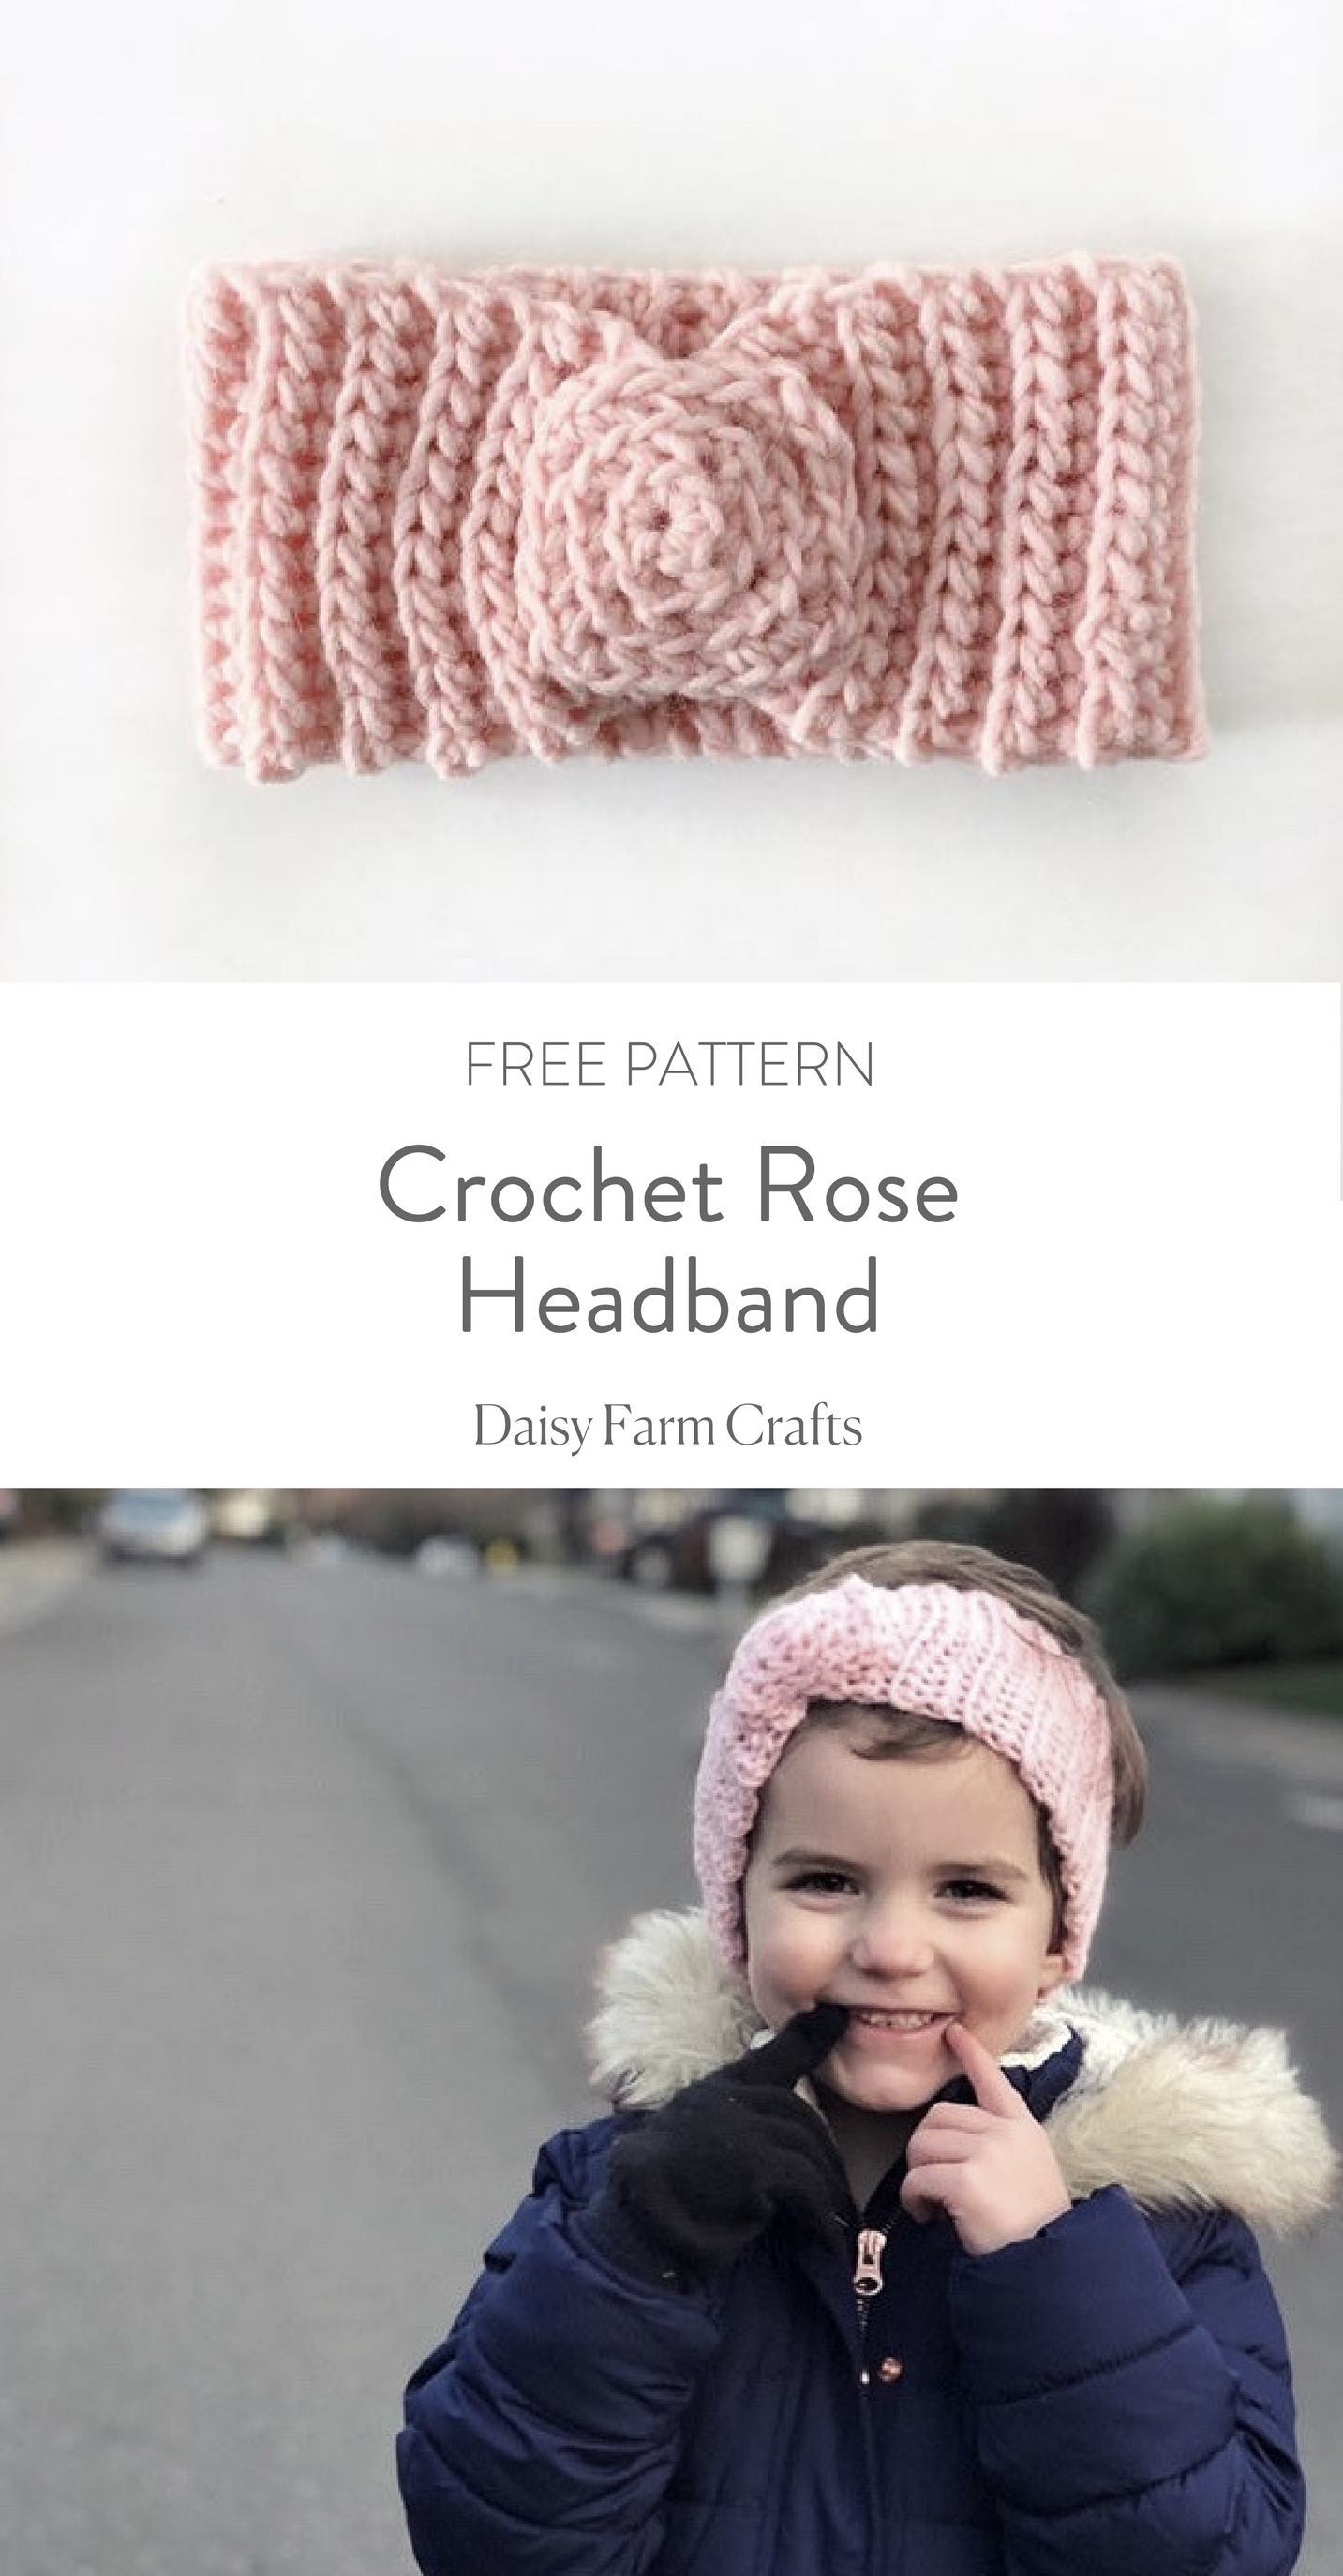 Crochet Rose Headband - Free Pattern | crochet head bands ...